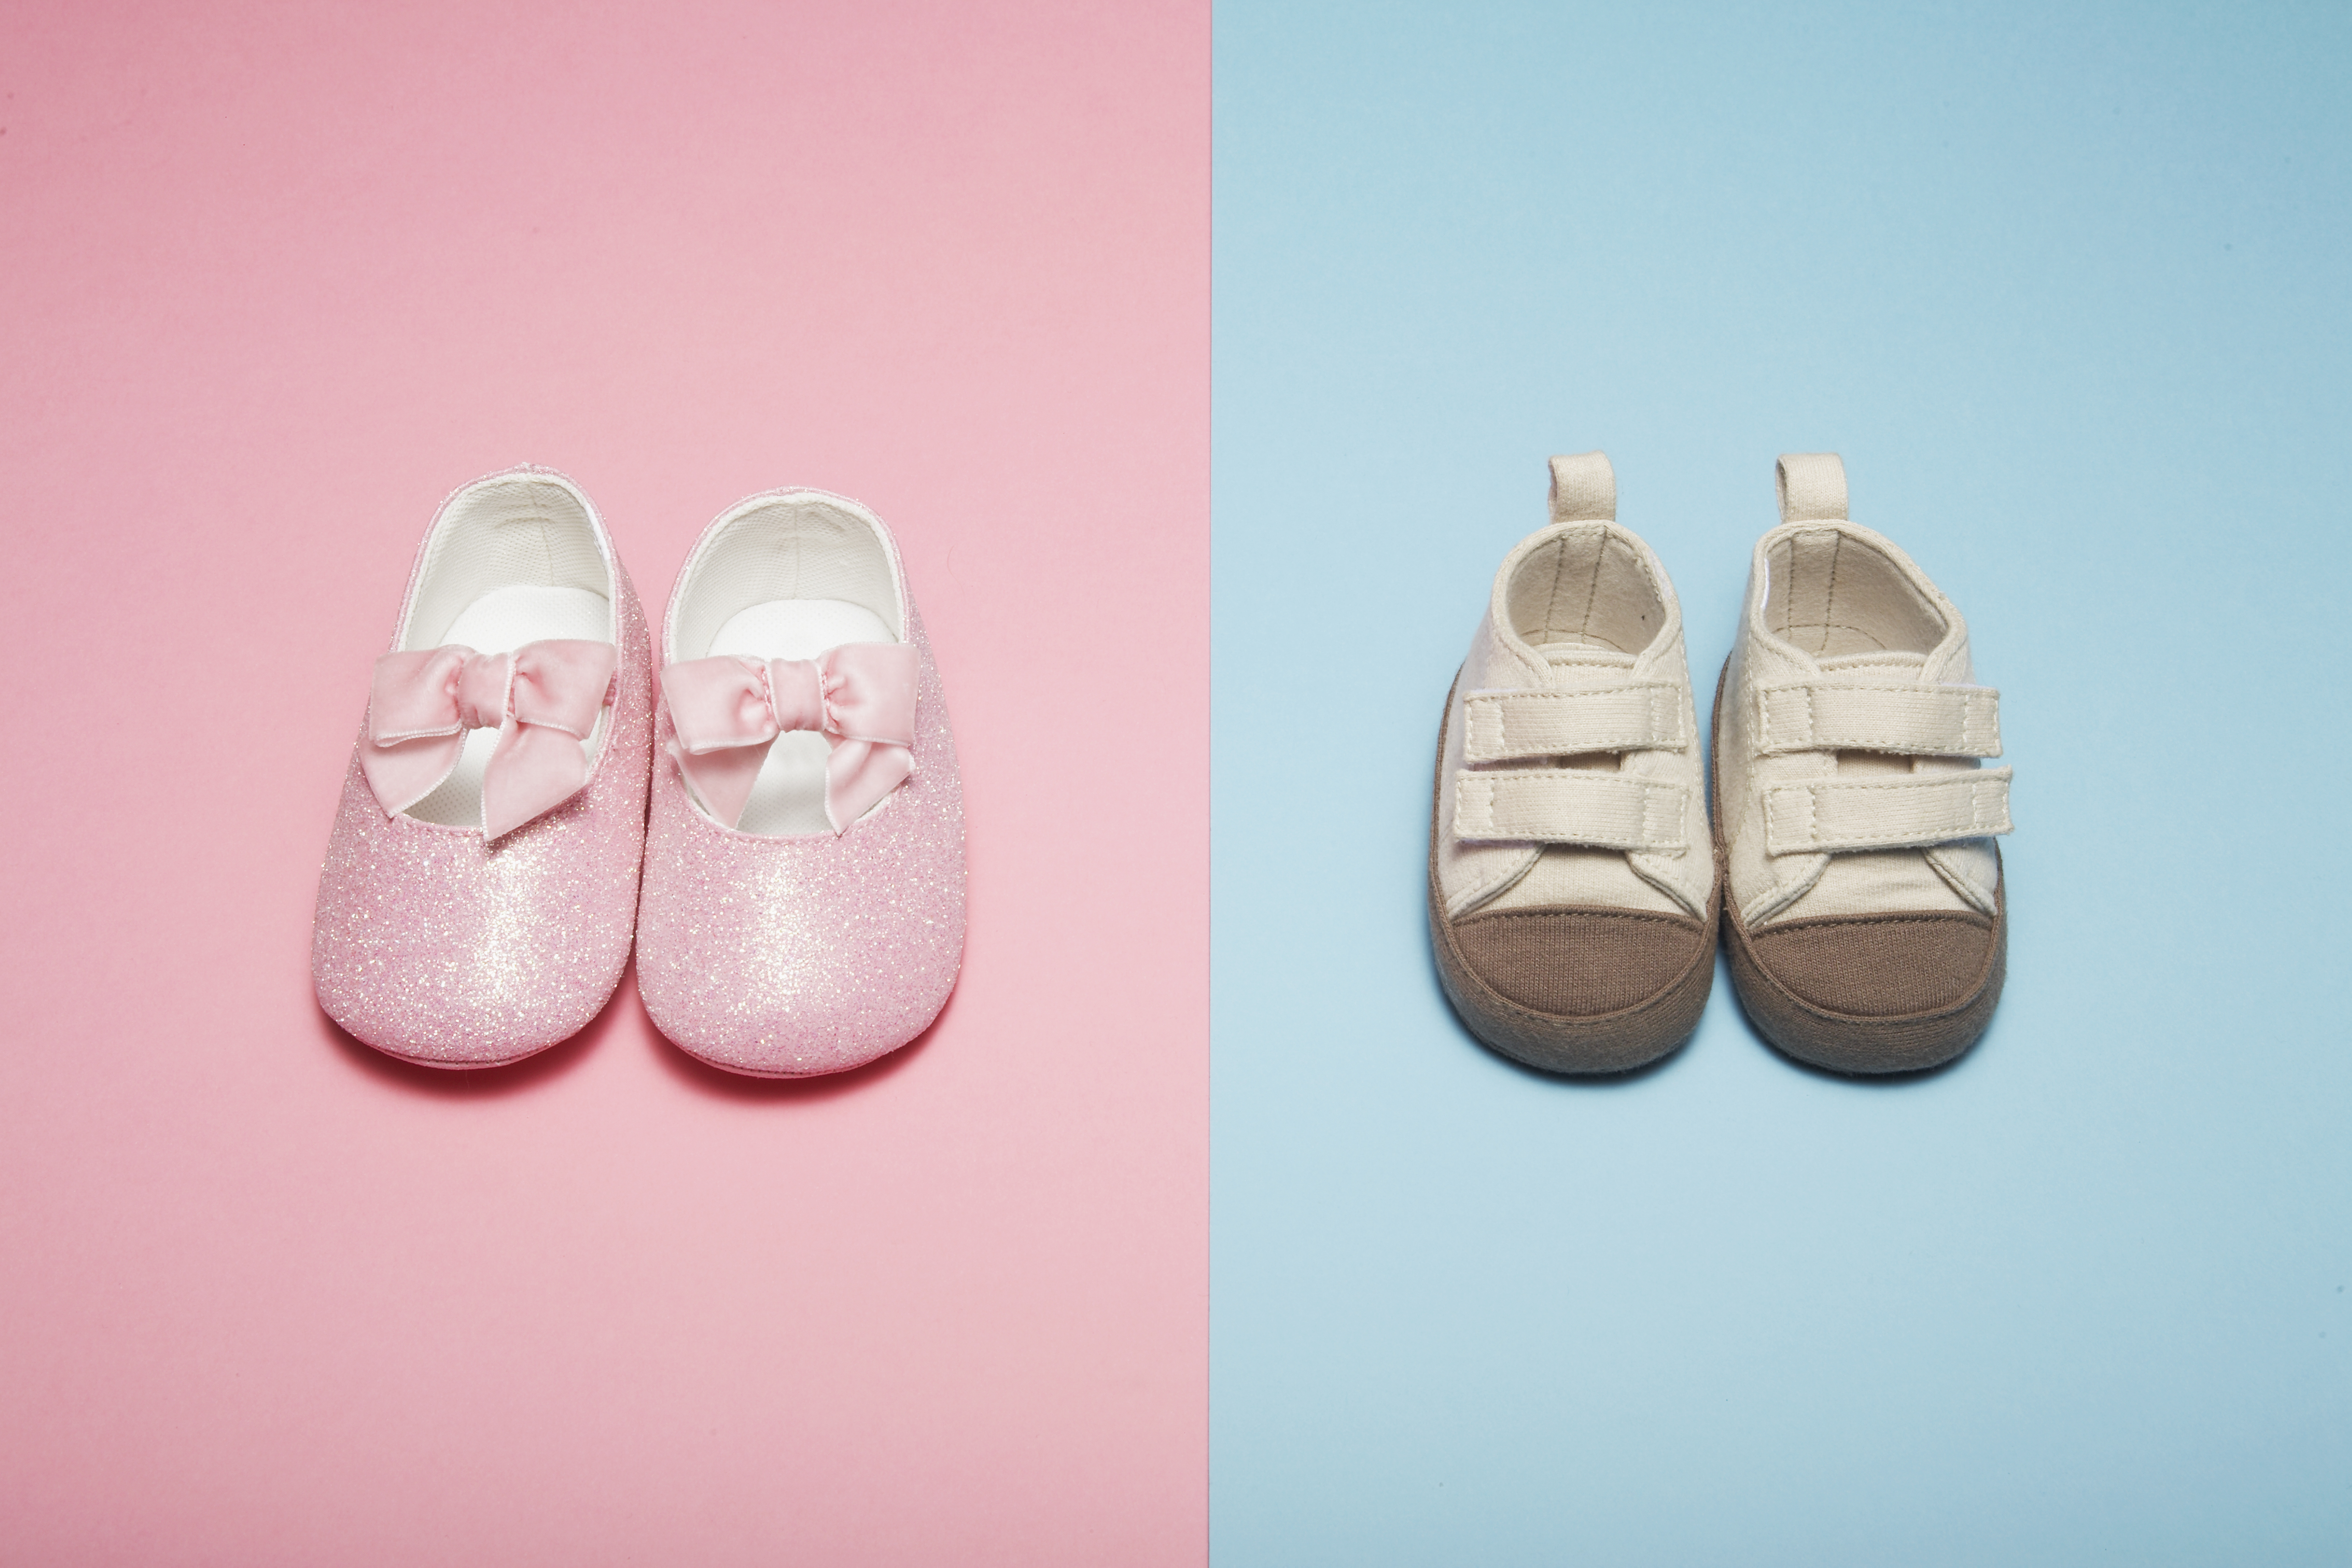 Two Pairs of Baby Shoes